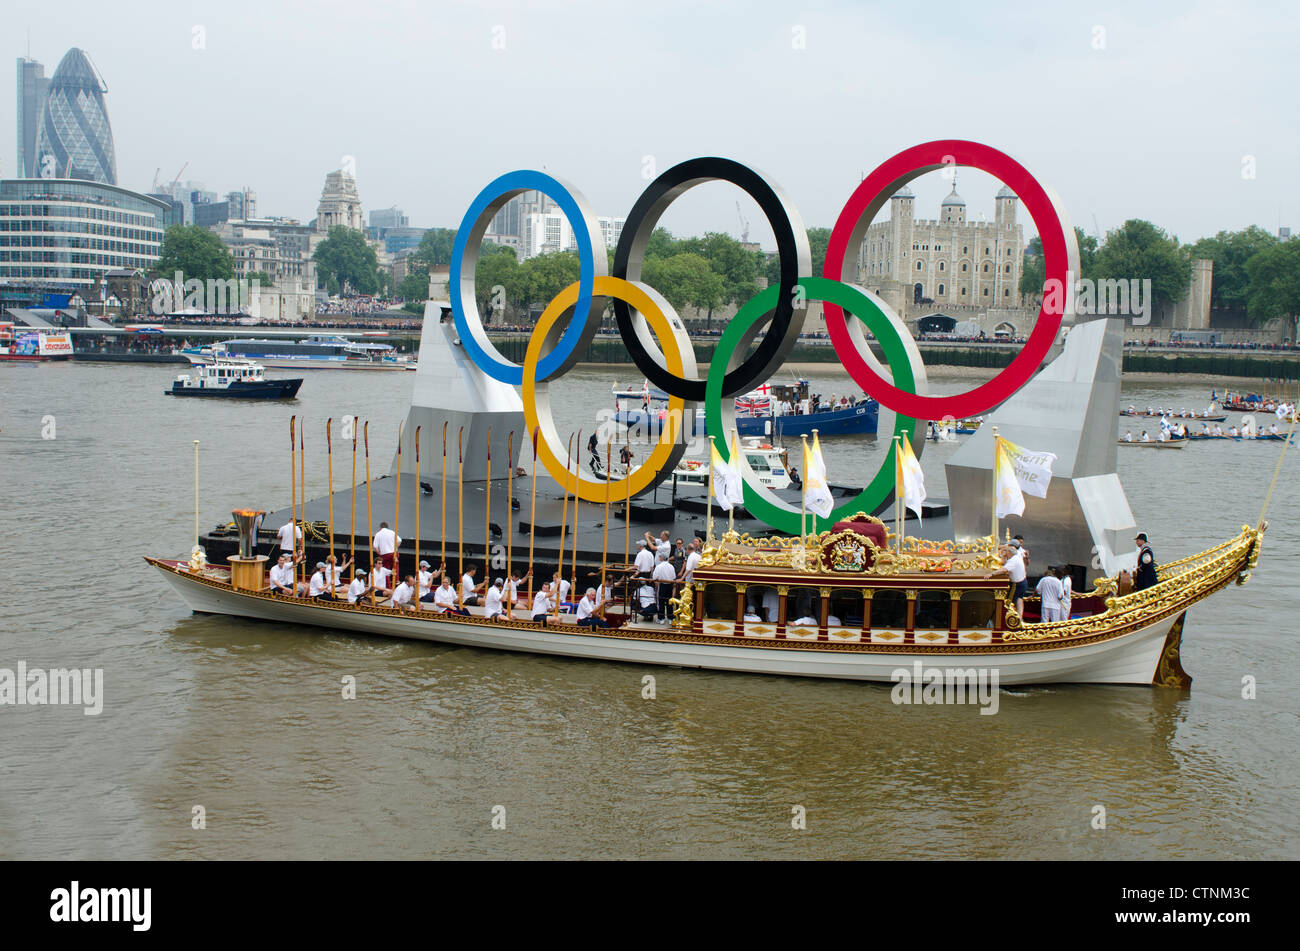 The Gloriana carrying the Olympic flame on the River Thames opposite The Tower of London London Uk London 2012 Olympics - Stock Image